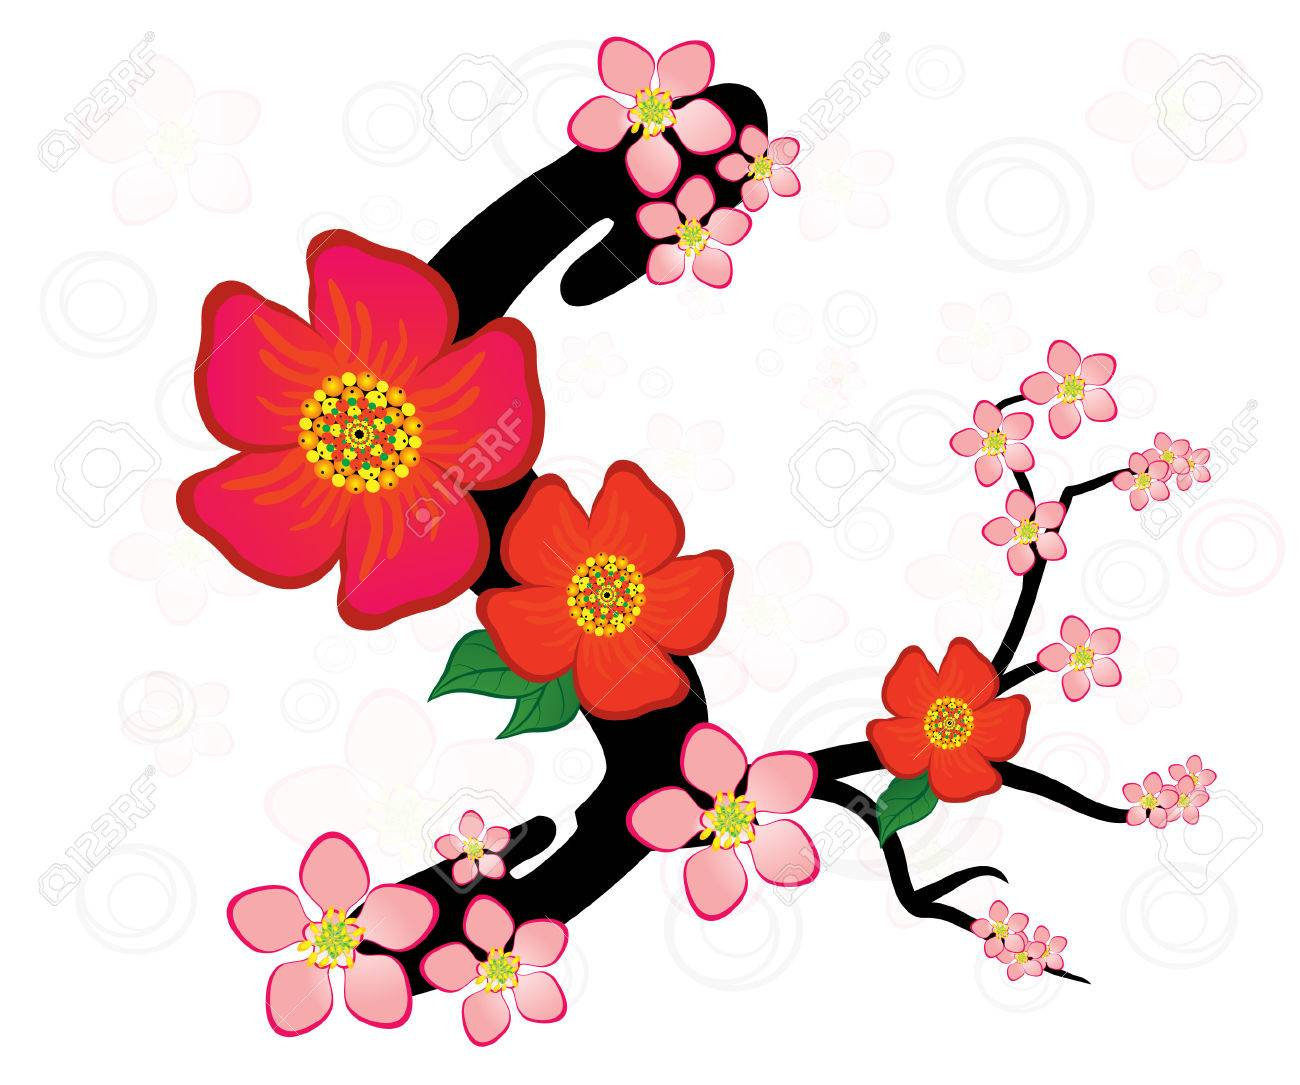 Alphabet With Gentle Sakura Flowers Letter S Royalty Free Cliparts